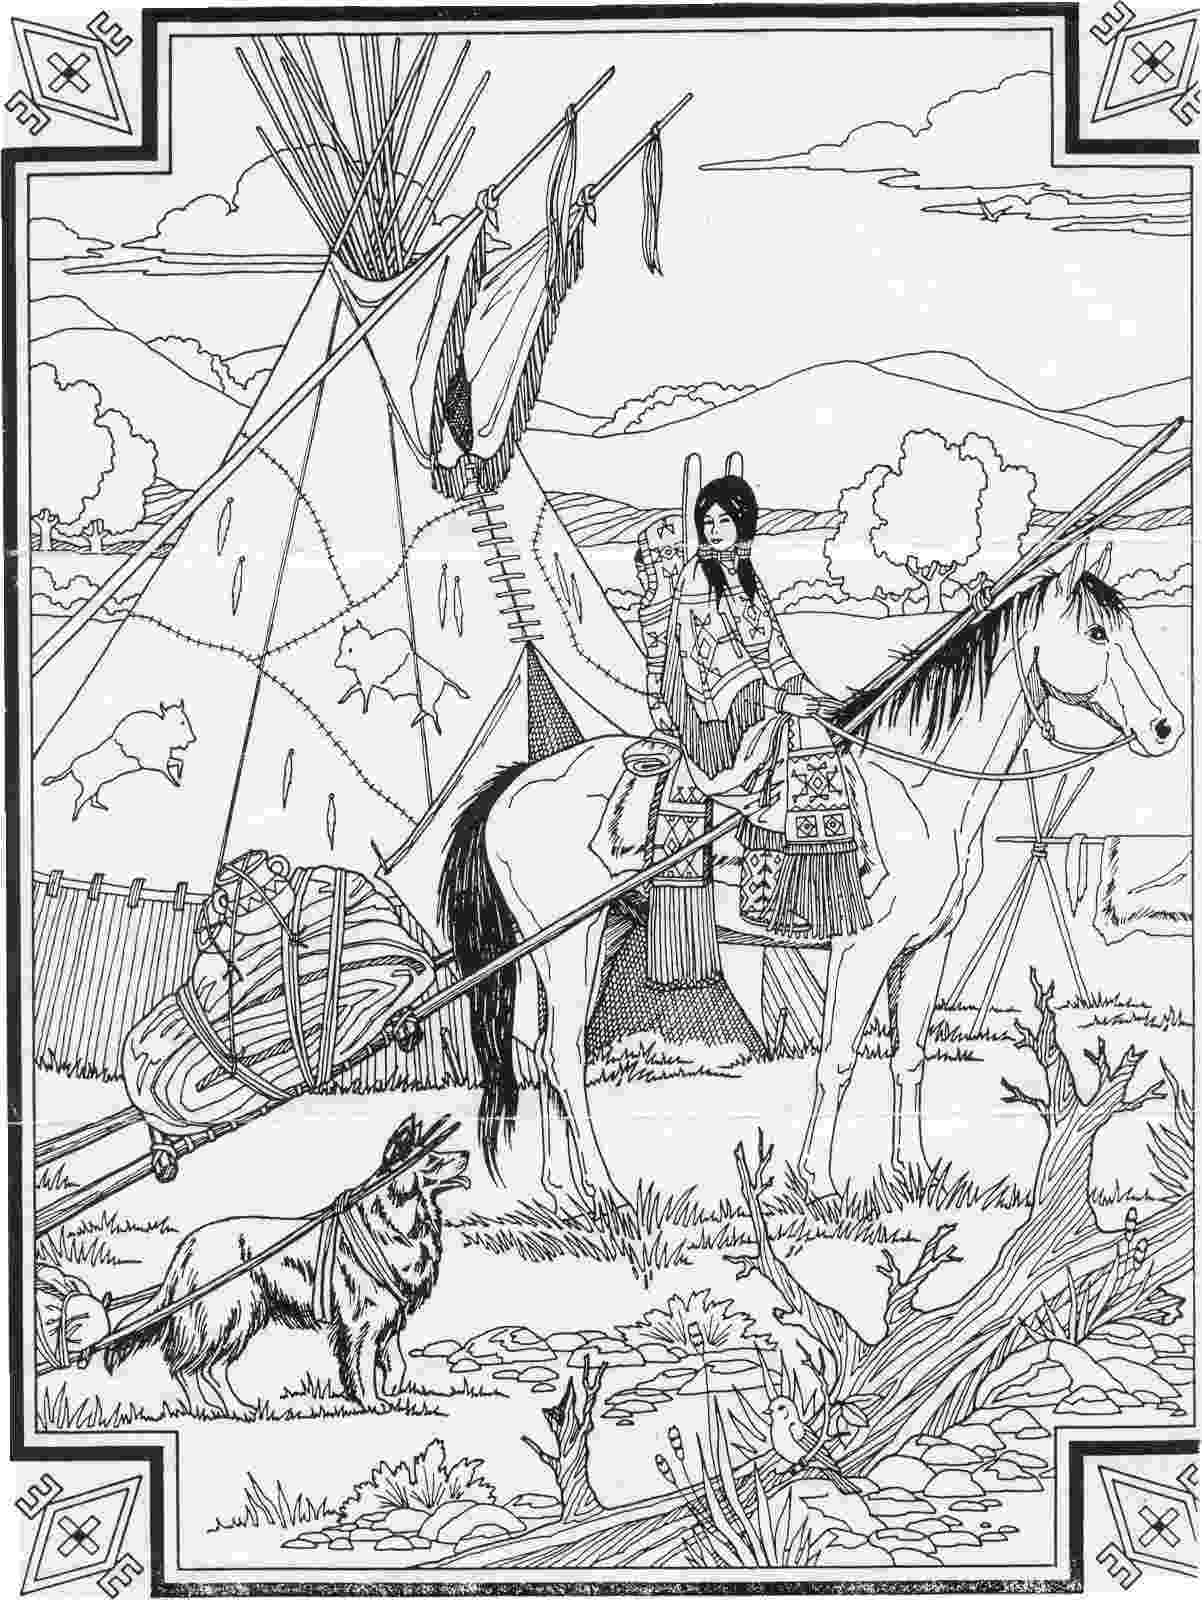 free native american indian coloring pages indian native chief profile native american adult pages native free coloring american indian